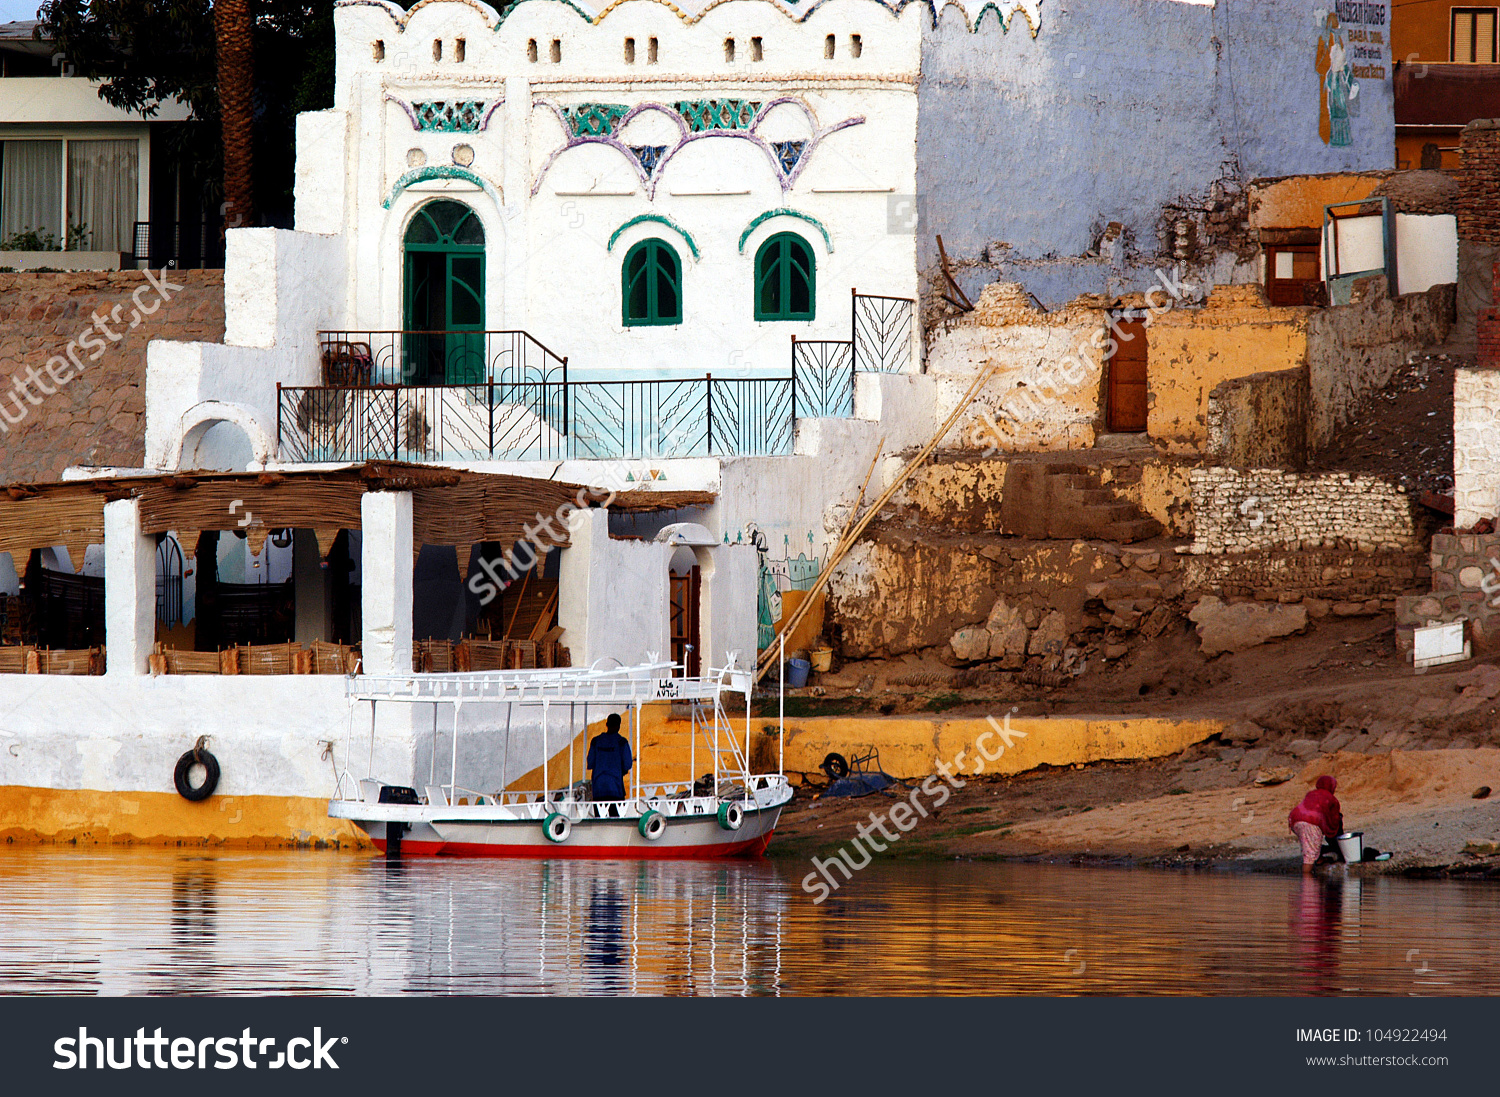 Nubian Village On River Nile River Stock Photo 104922494.